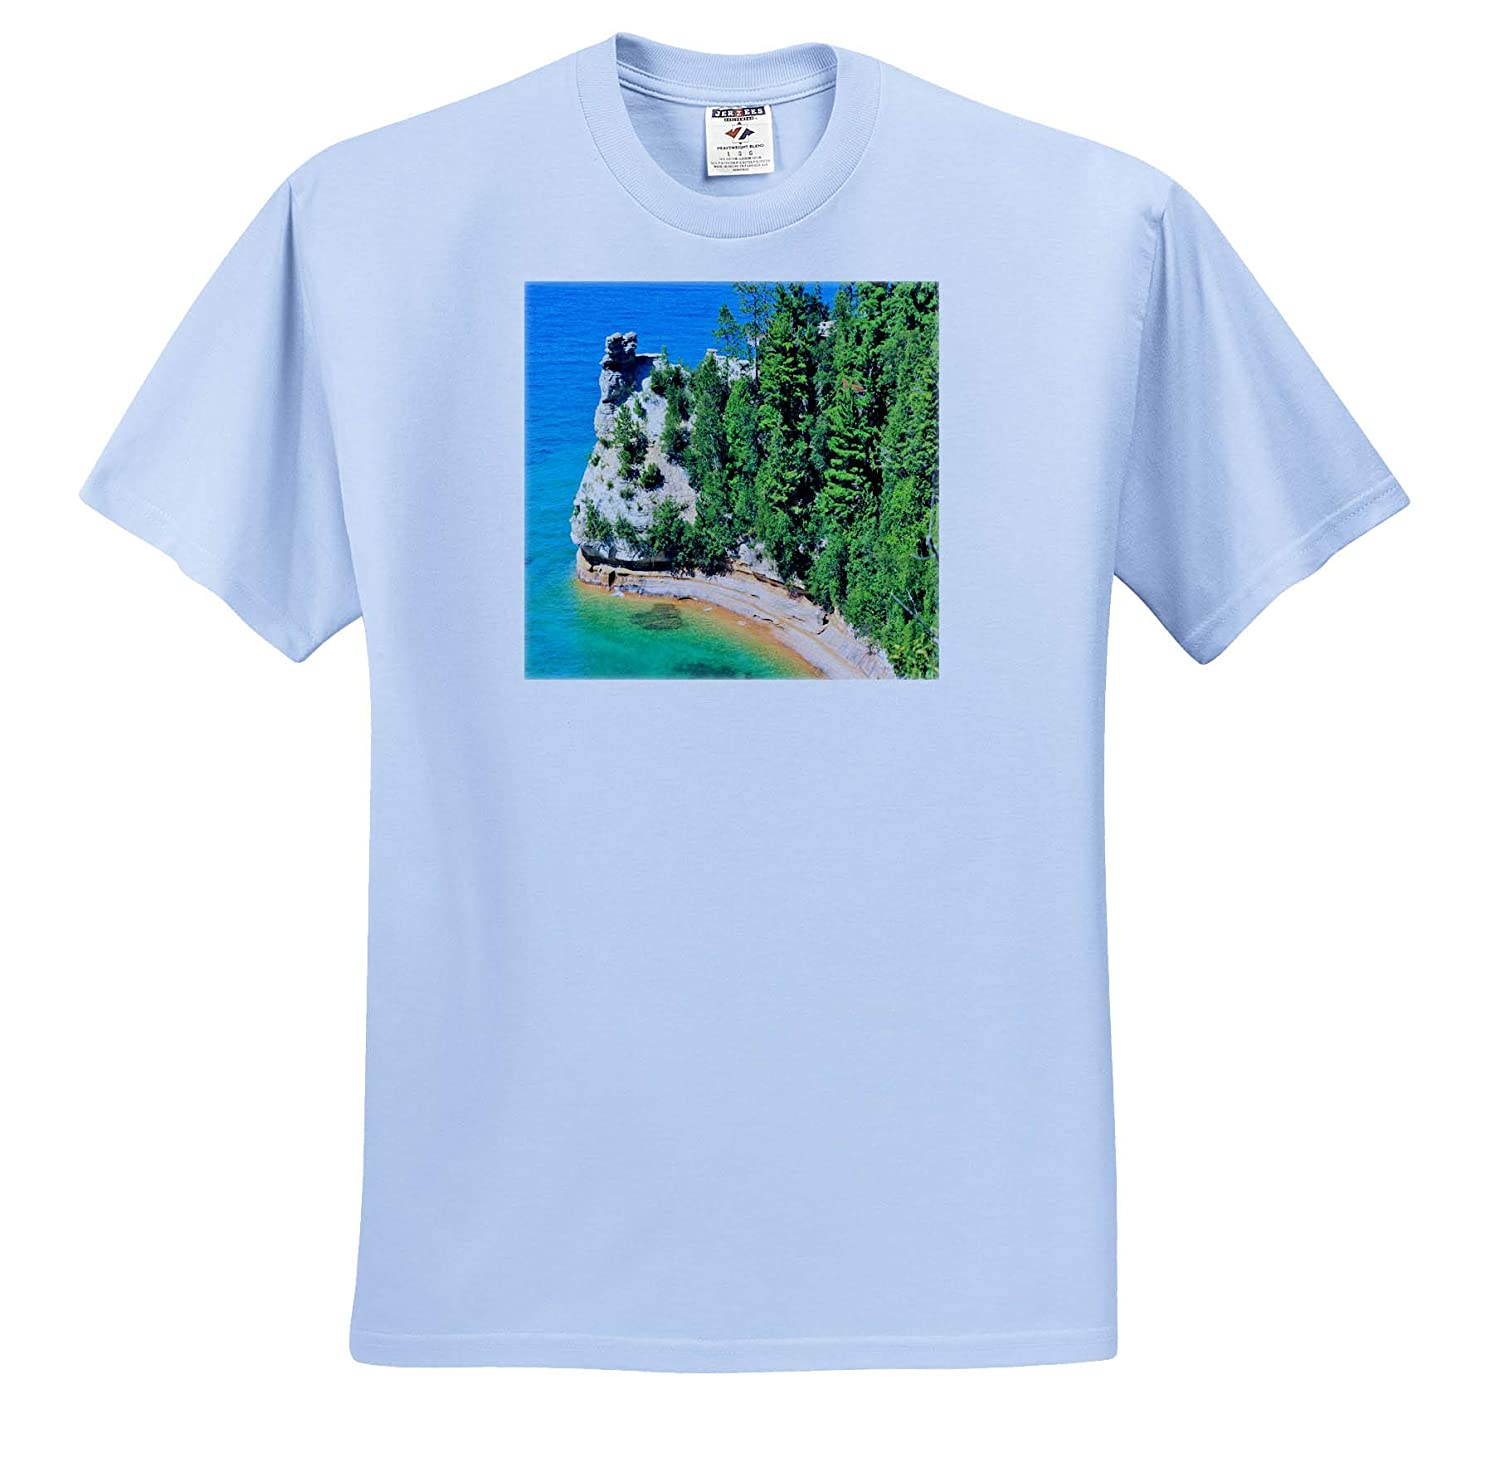 Adult T-Shirt XL Miners Castle 3dRose Dreamscapes by Leslie Scenery ts/_314277